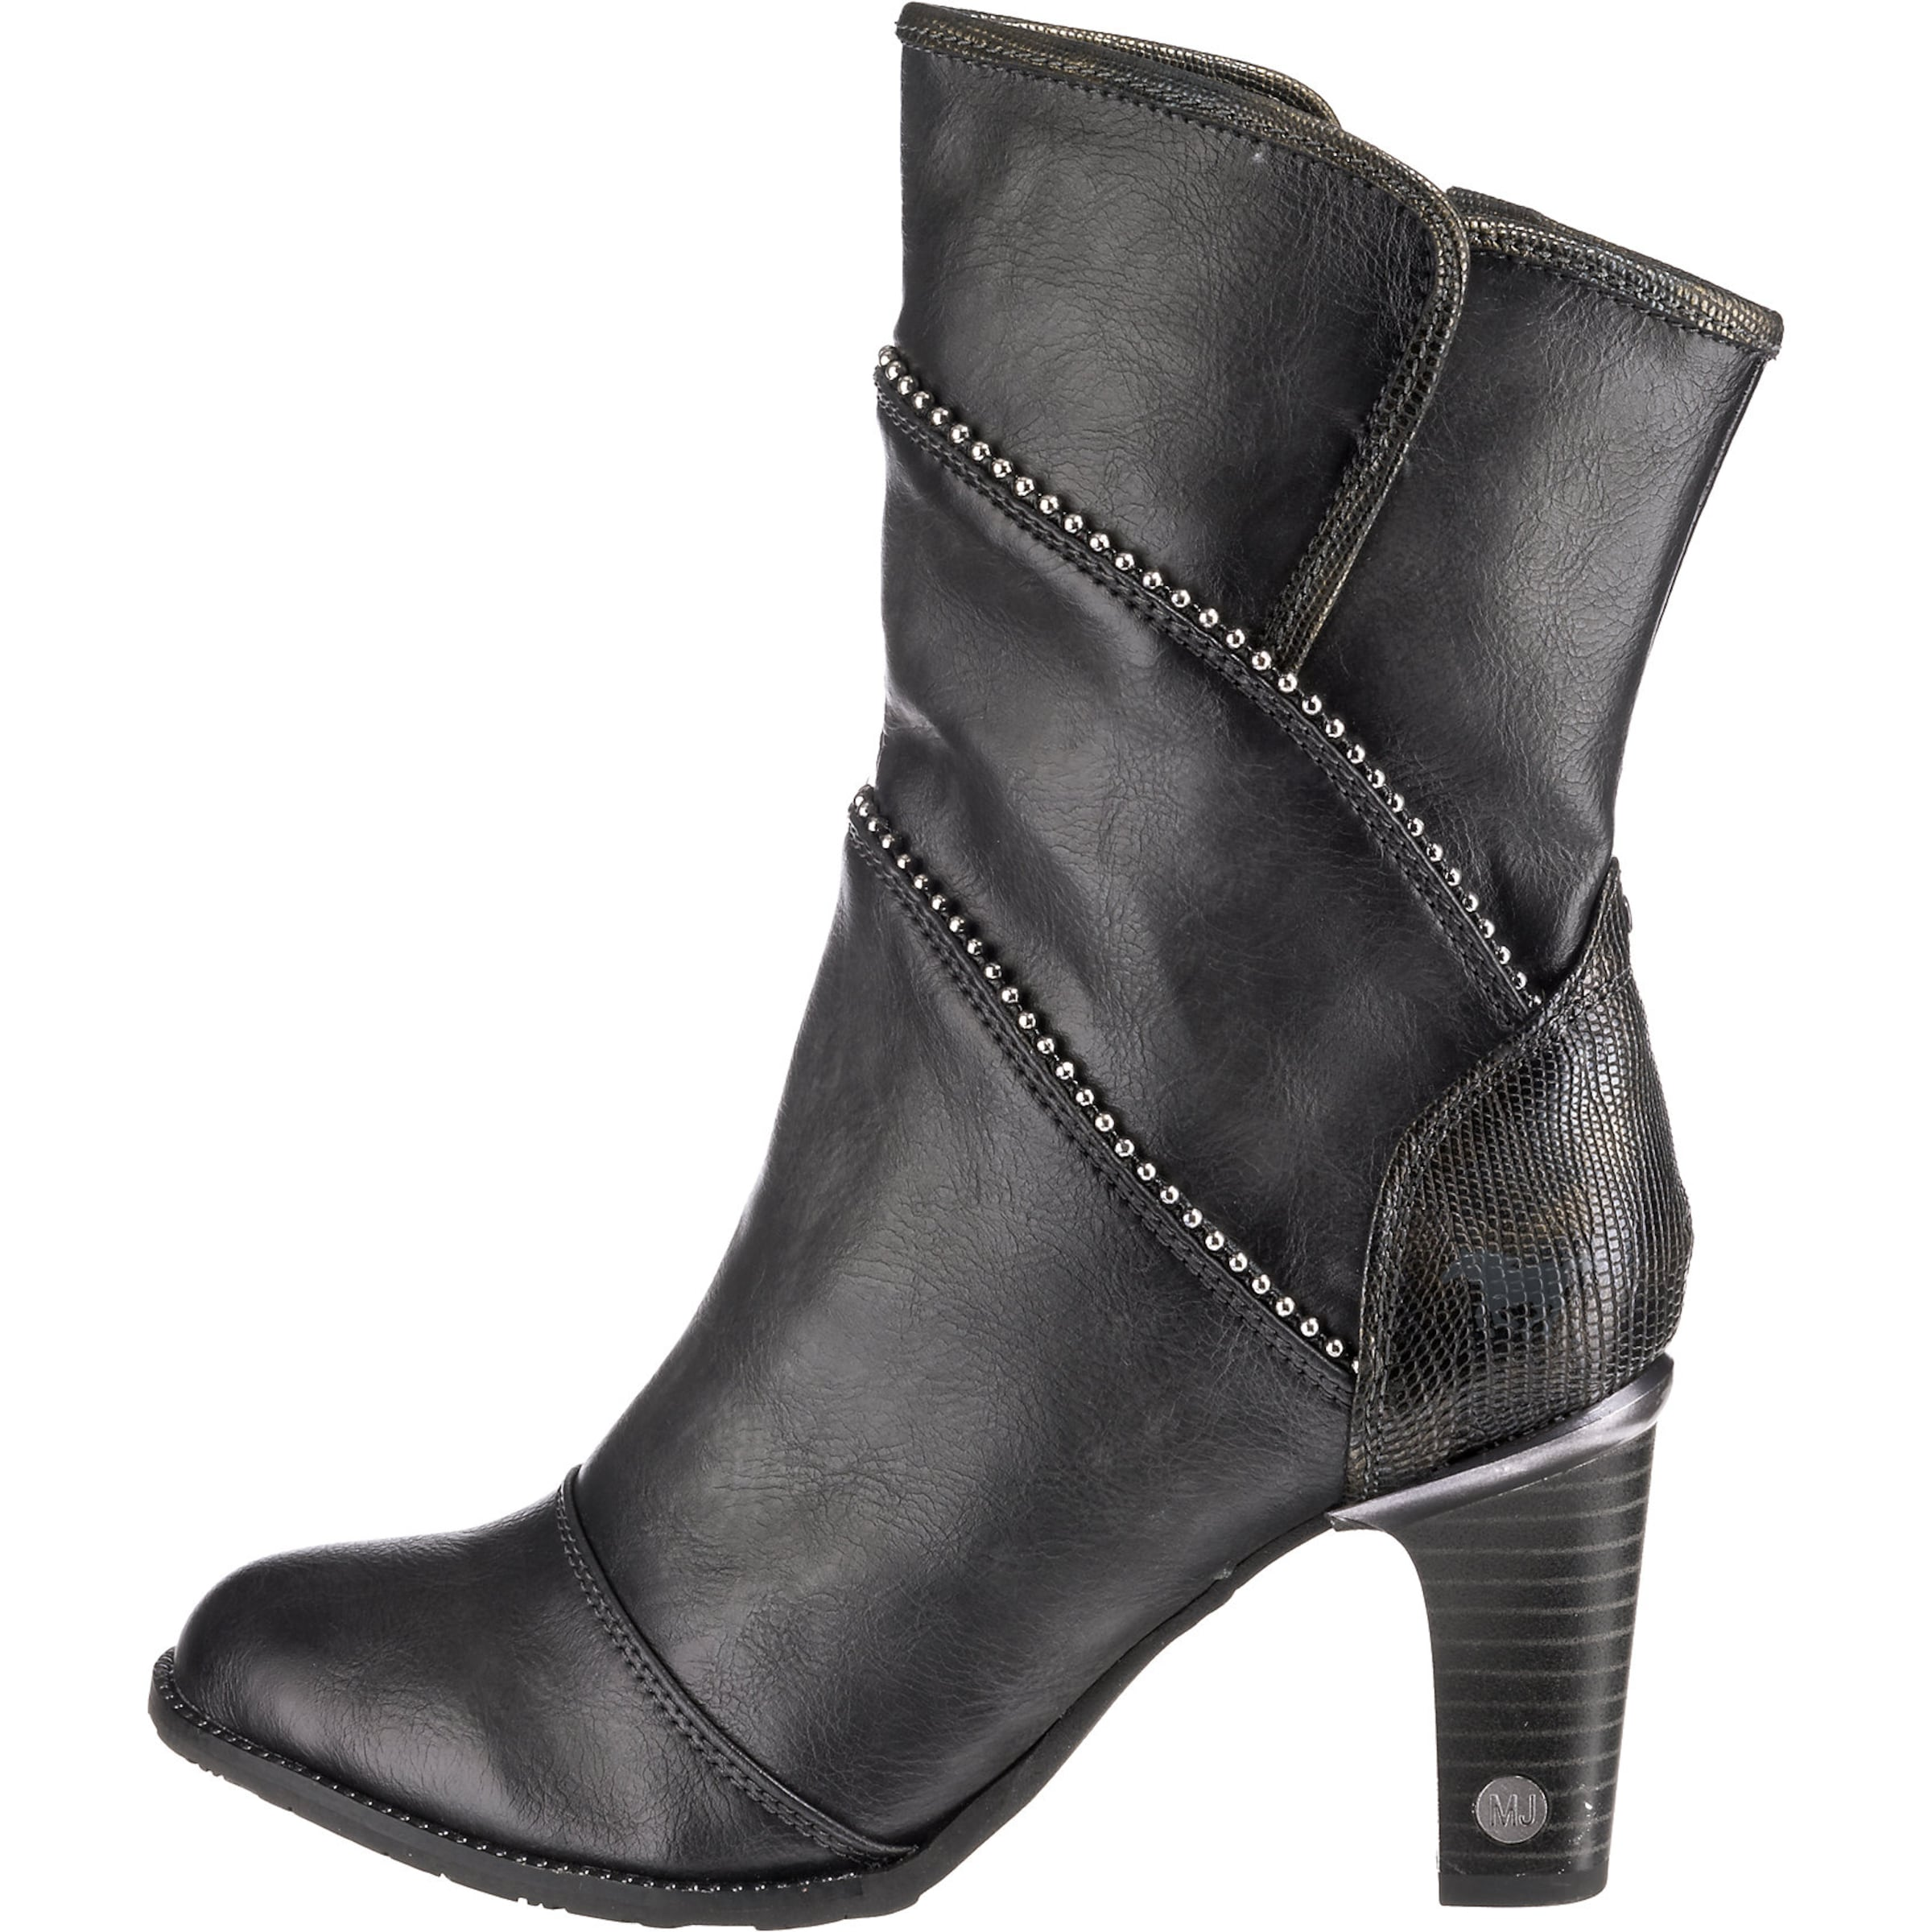 Stiefel Mustang Grau In Stiefel Mustang oBdxWrCe